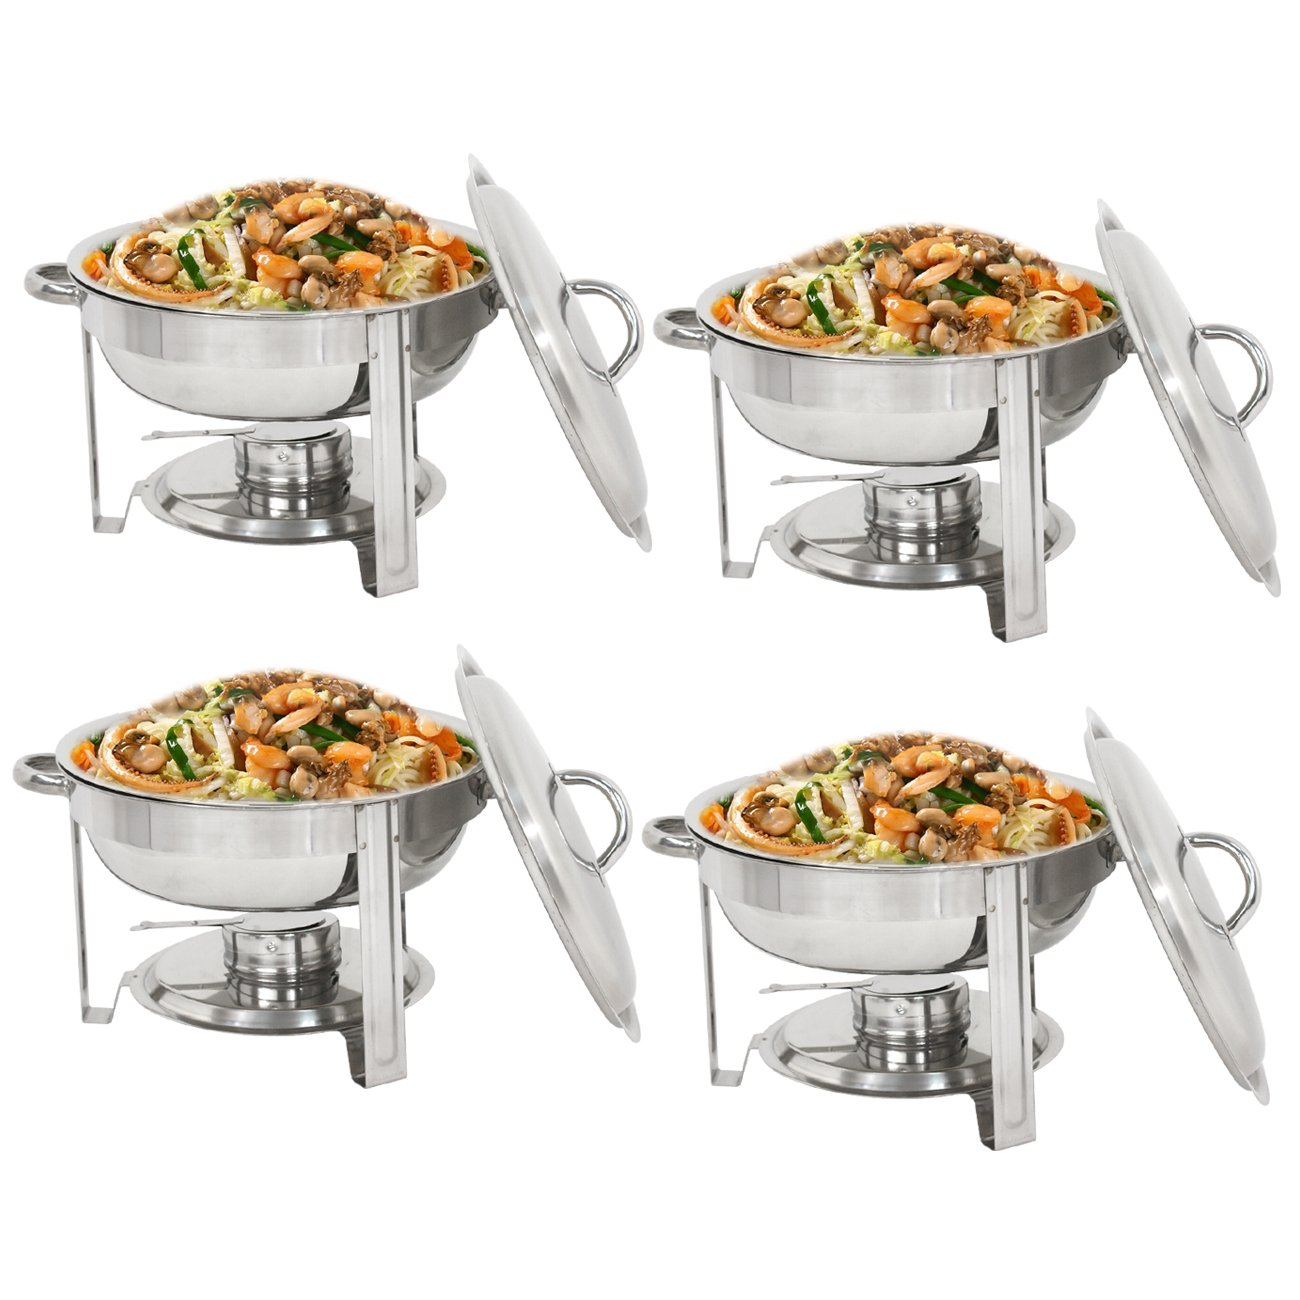 Super Deal Pack of 4 Full Size Round Chafing Dish 5 Quart Stainless Steel Tray Buffet Catering, Dinner Serving Buffer Warmer Set, Pack of 4 by SuperDealUsa